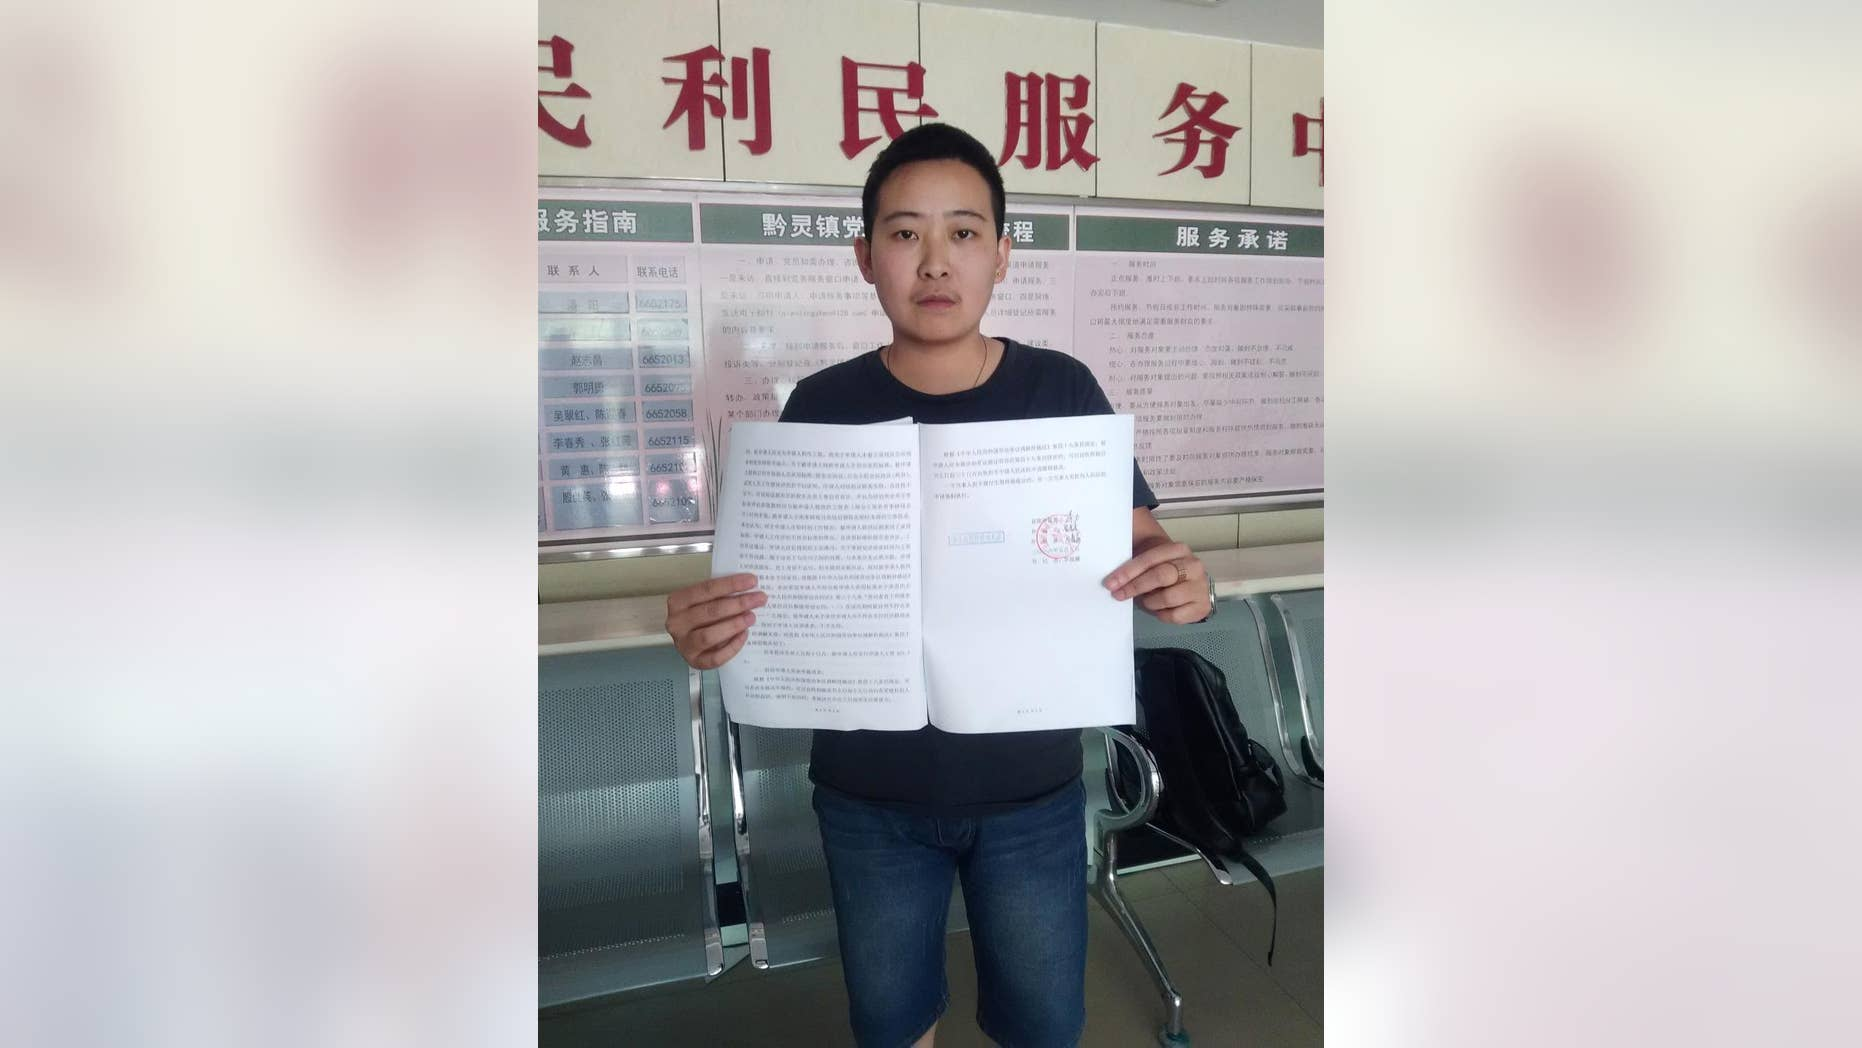 In this photo released by Mr. C, a transgender man who uses the name Mr. C to protect his parents from discrimination, holds up the arbitration results while posing for a photo at a government office in Guiyang in southwestern China's Guizhou province Tuesday, May 10, 2016. Mr. C said he was disappointed but will continue to fight for equality after a labor arbitration panel on Tuesday, rejected his complaint that he was fired unfairly, in China's first transgender job discrimination case. (Mr. C via AP)